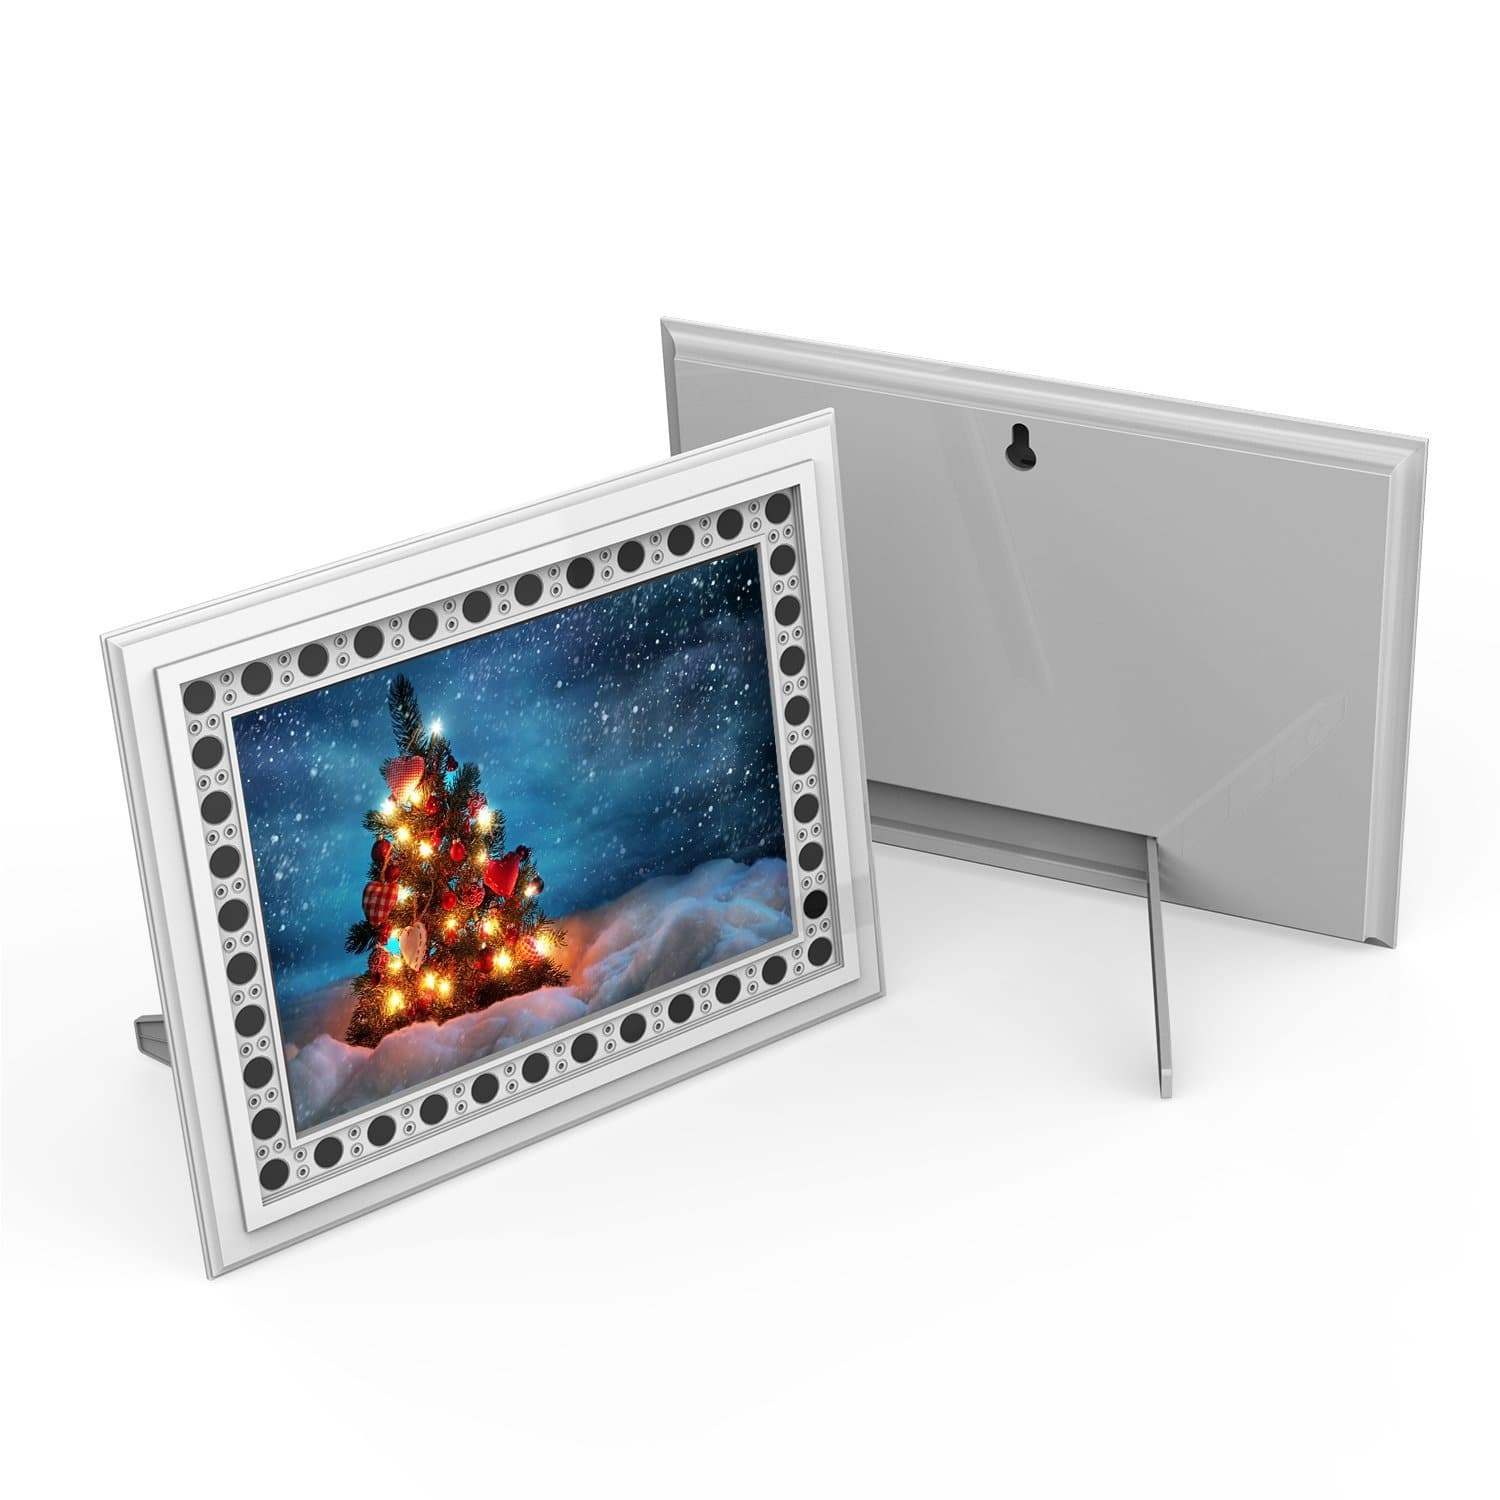 Hd Digital Photo Frame Hidden Spy Camera Night Vision Motion